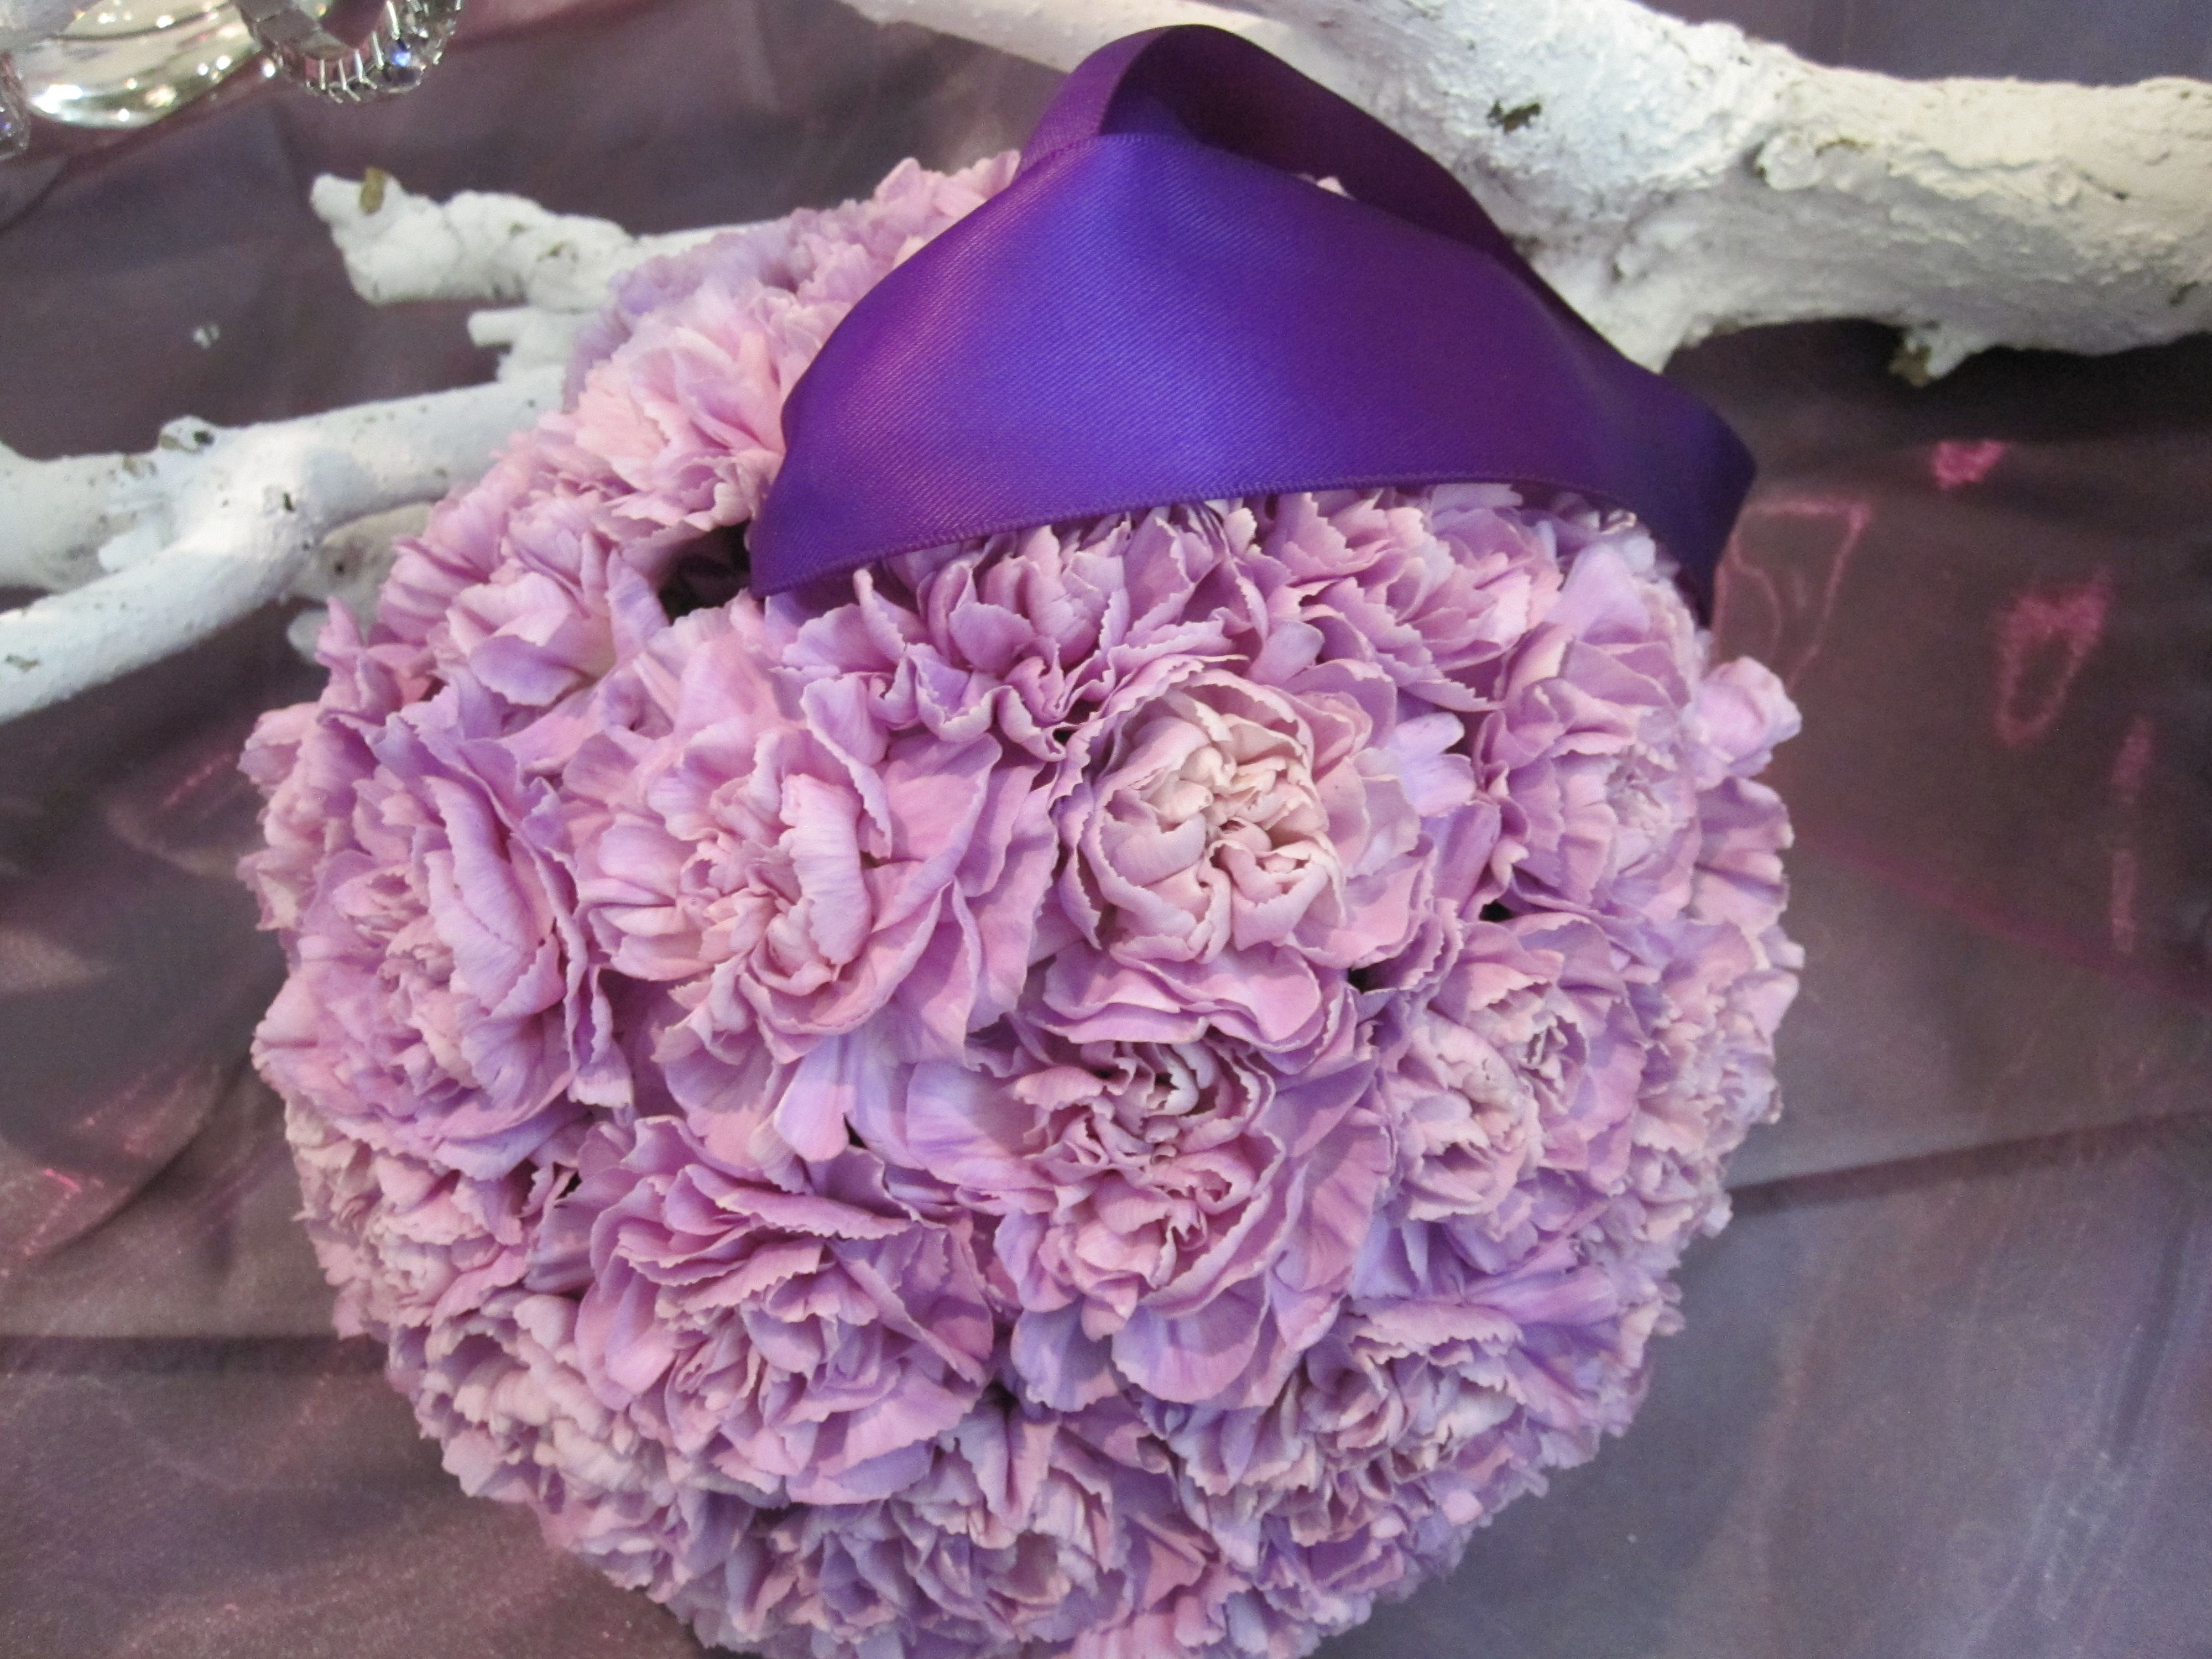 Pin by The Original Posie on Centrepieces & Ceremony